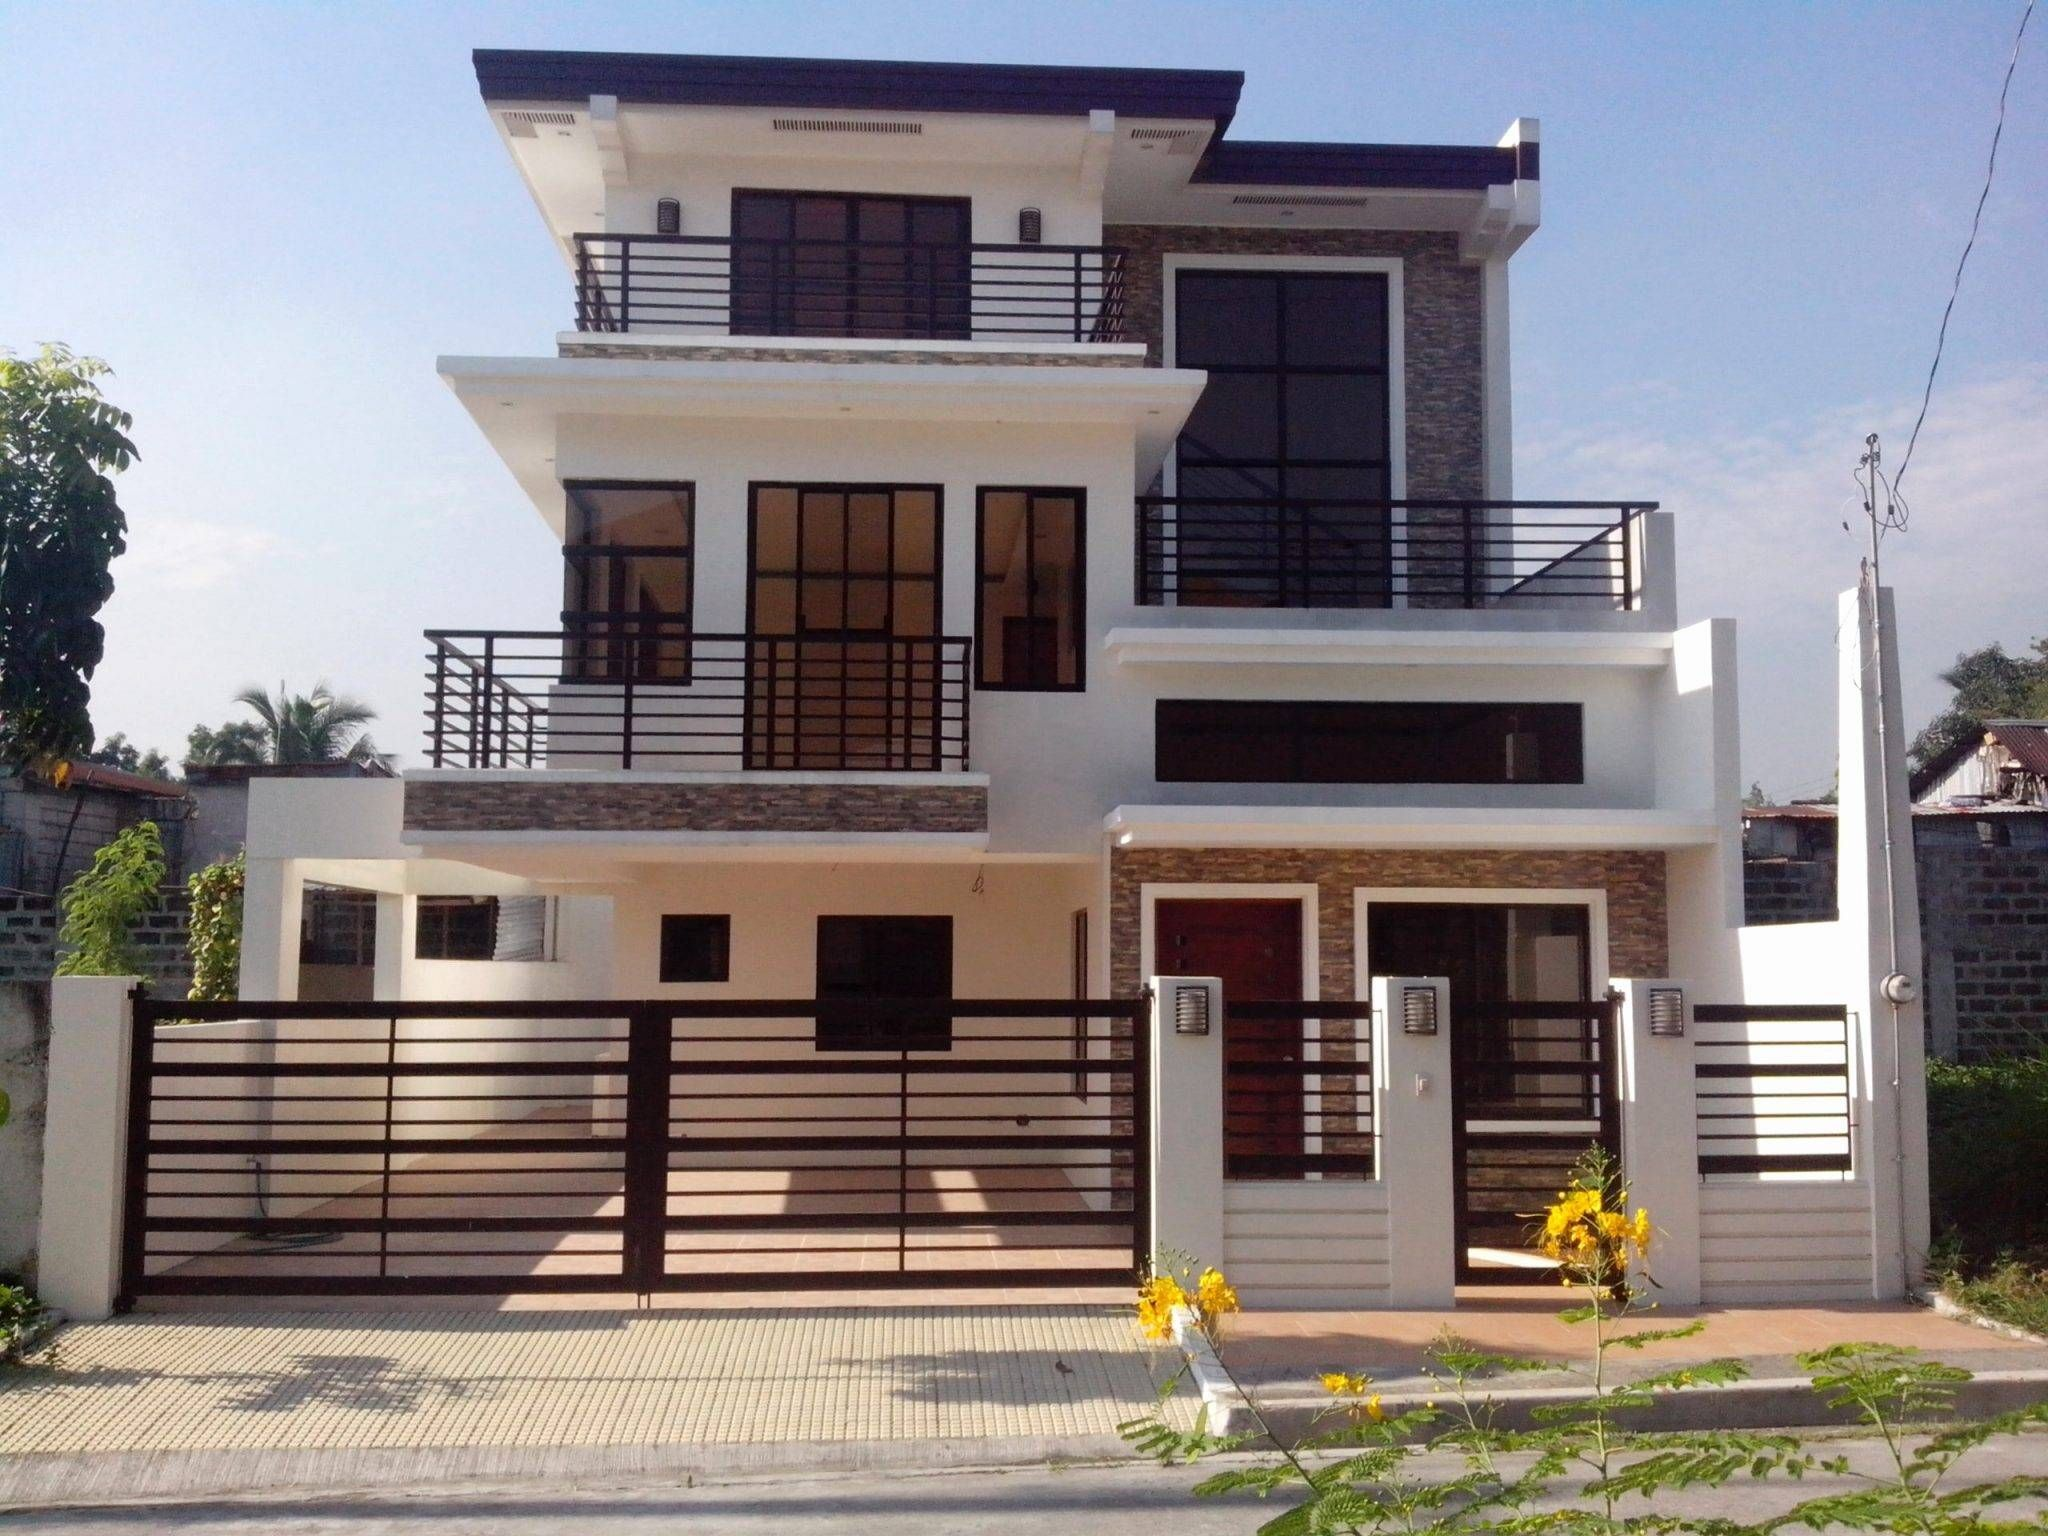 Modern House Plans 3 Story Philippines House Design Modern House Philippines Small House Design Philippines